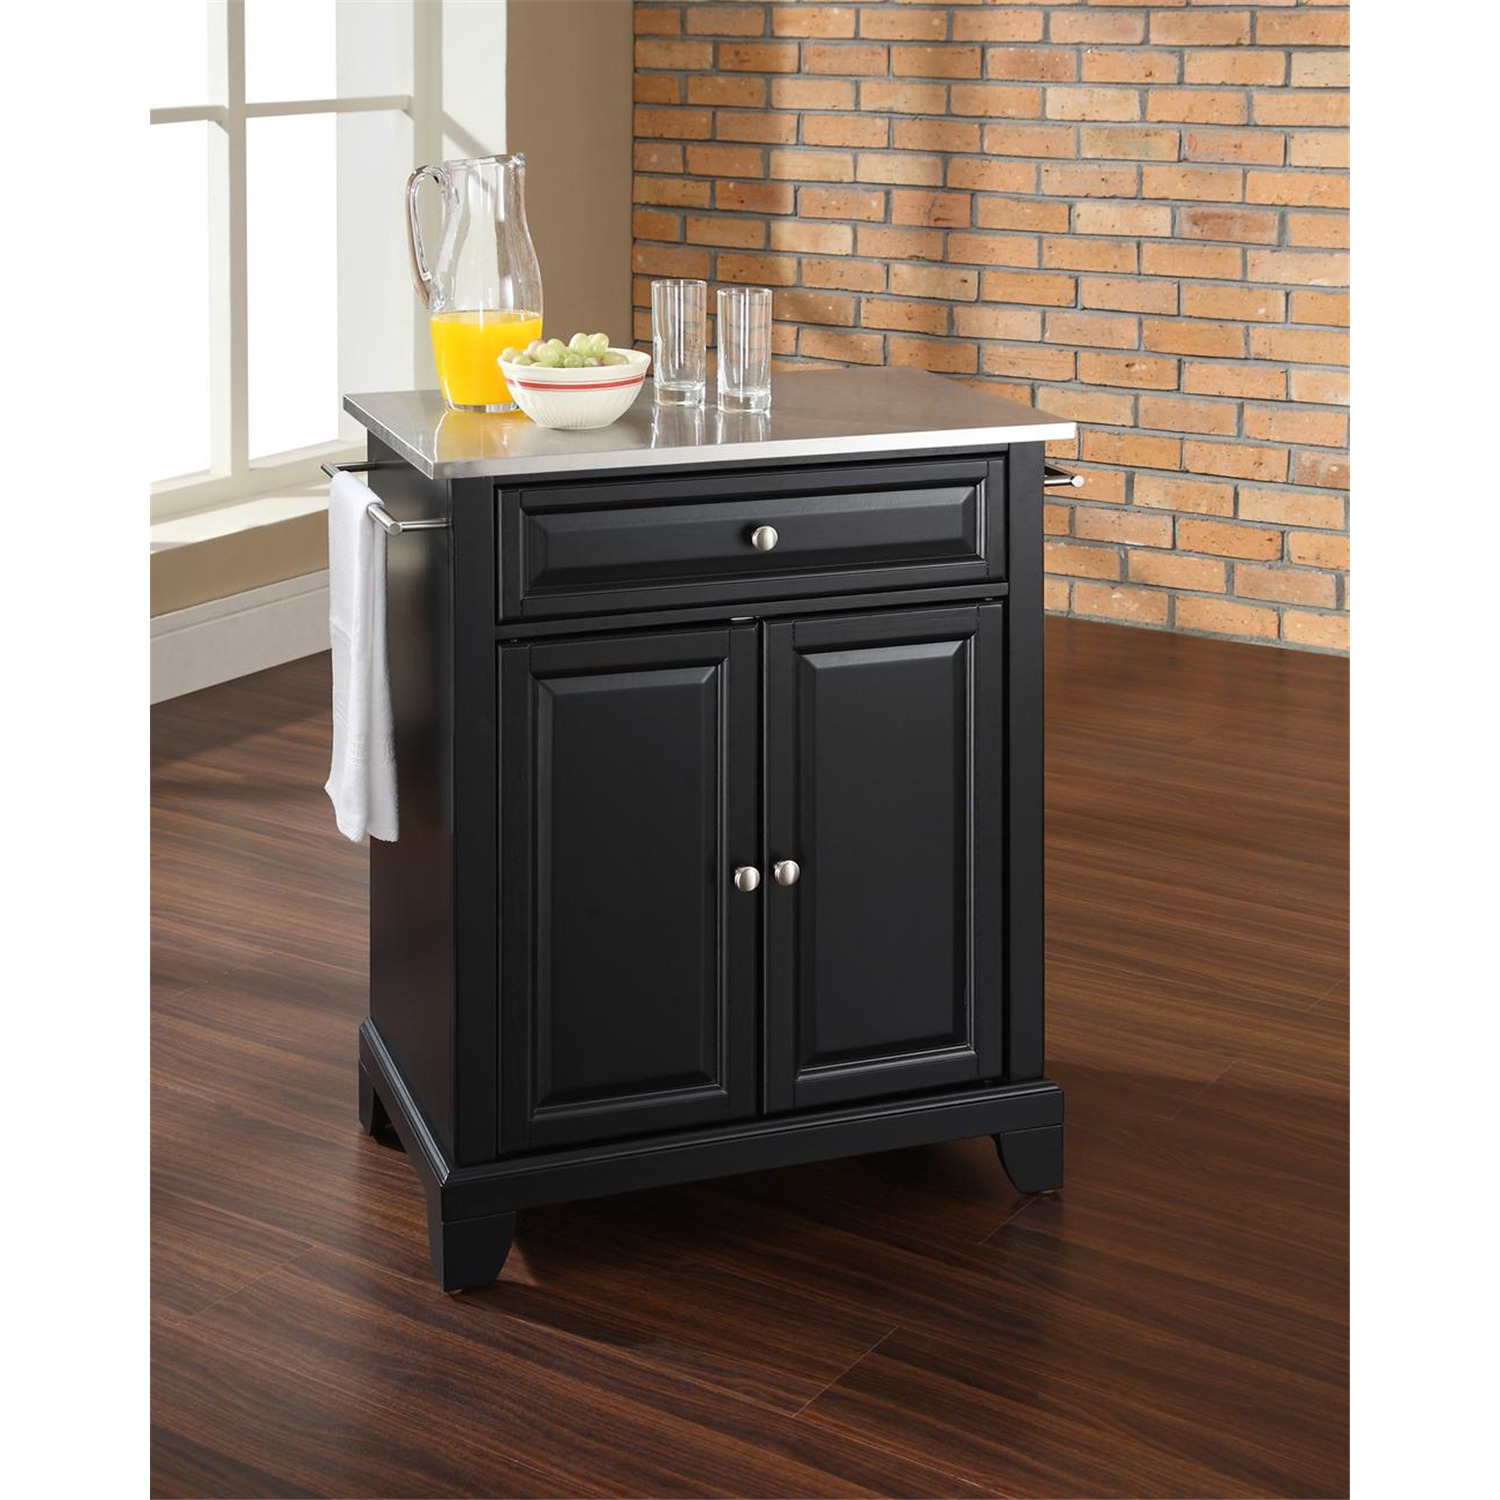 Crosley Newport Portable Kitchen Island By Oj Commerce. Kitchen Island With Bench. Kitchen Tile Grout Sealer. Kitchen Island Boos. Stone Kitchen Tiles Wall. Kitchen Unit Led Lights. Bimby Kitchen Appliance. Black Kitchen Appliance Packages. Kitchen Islands Lowes